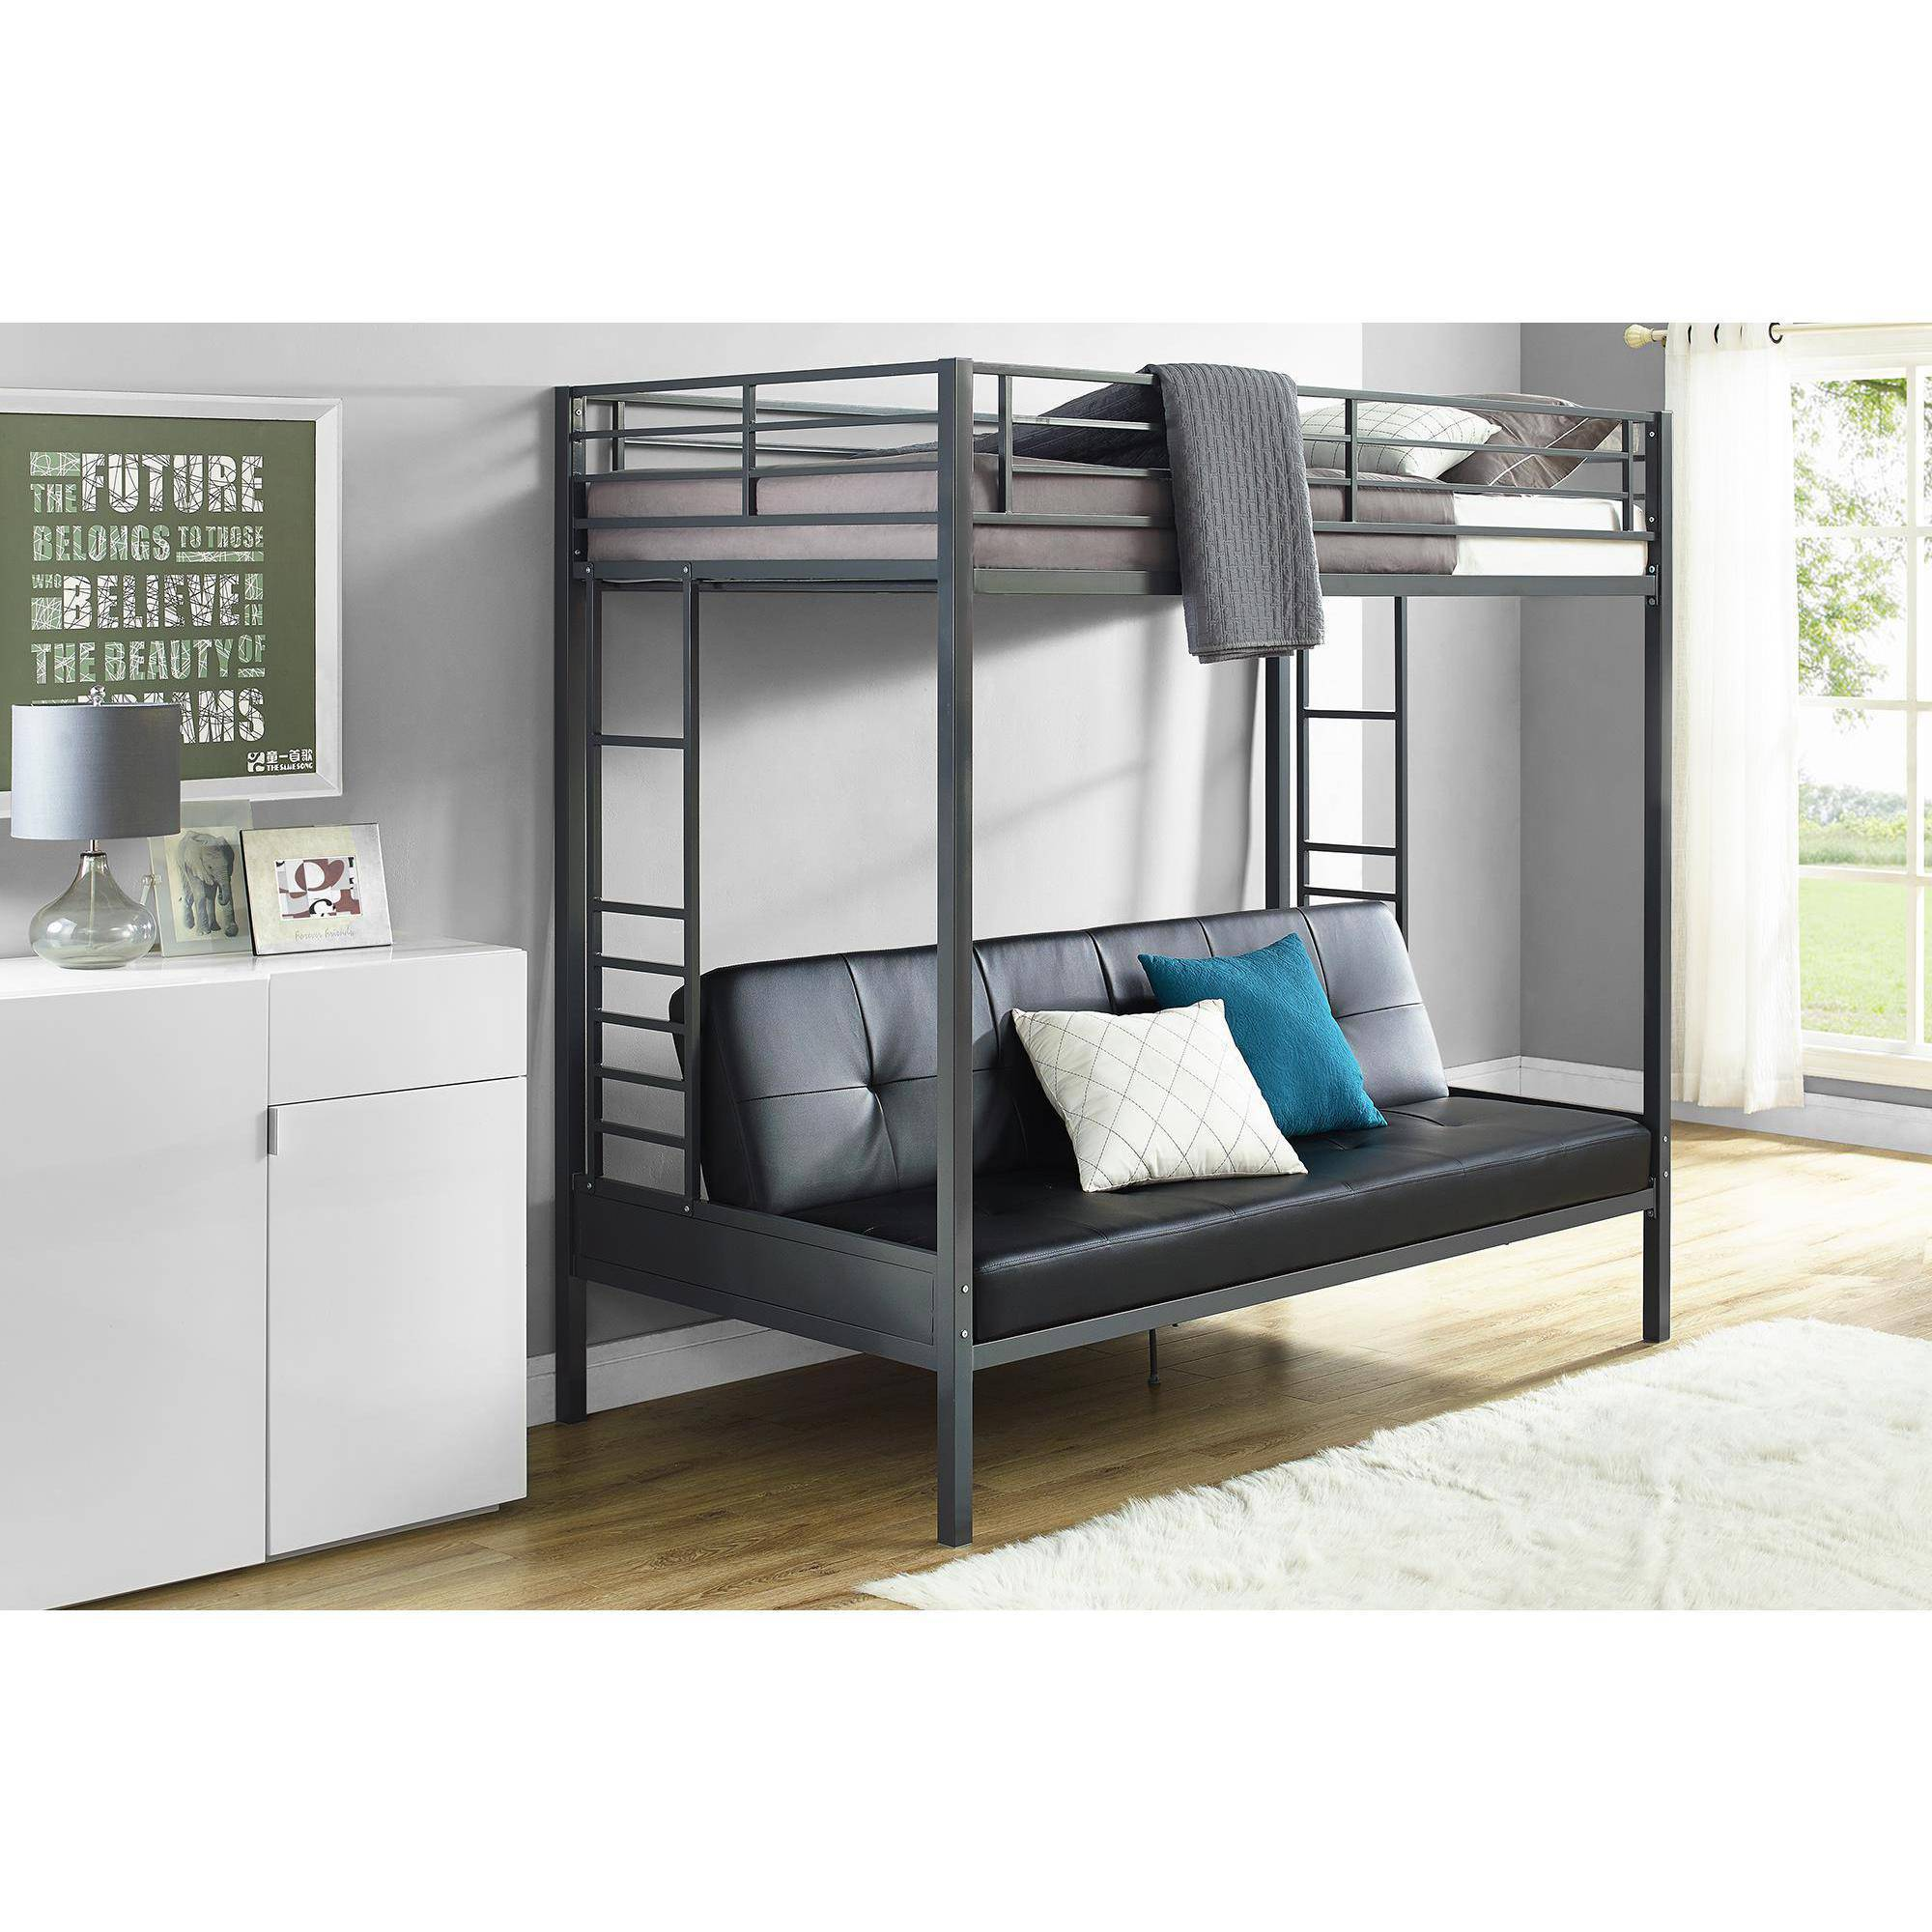 DHP Jasper Premium Twin Over Futon Bunk Bed with Black Faux Leather Futon Mattress, Gunmetal by Dorel Home Products